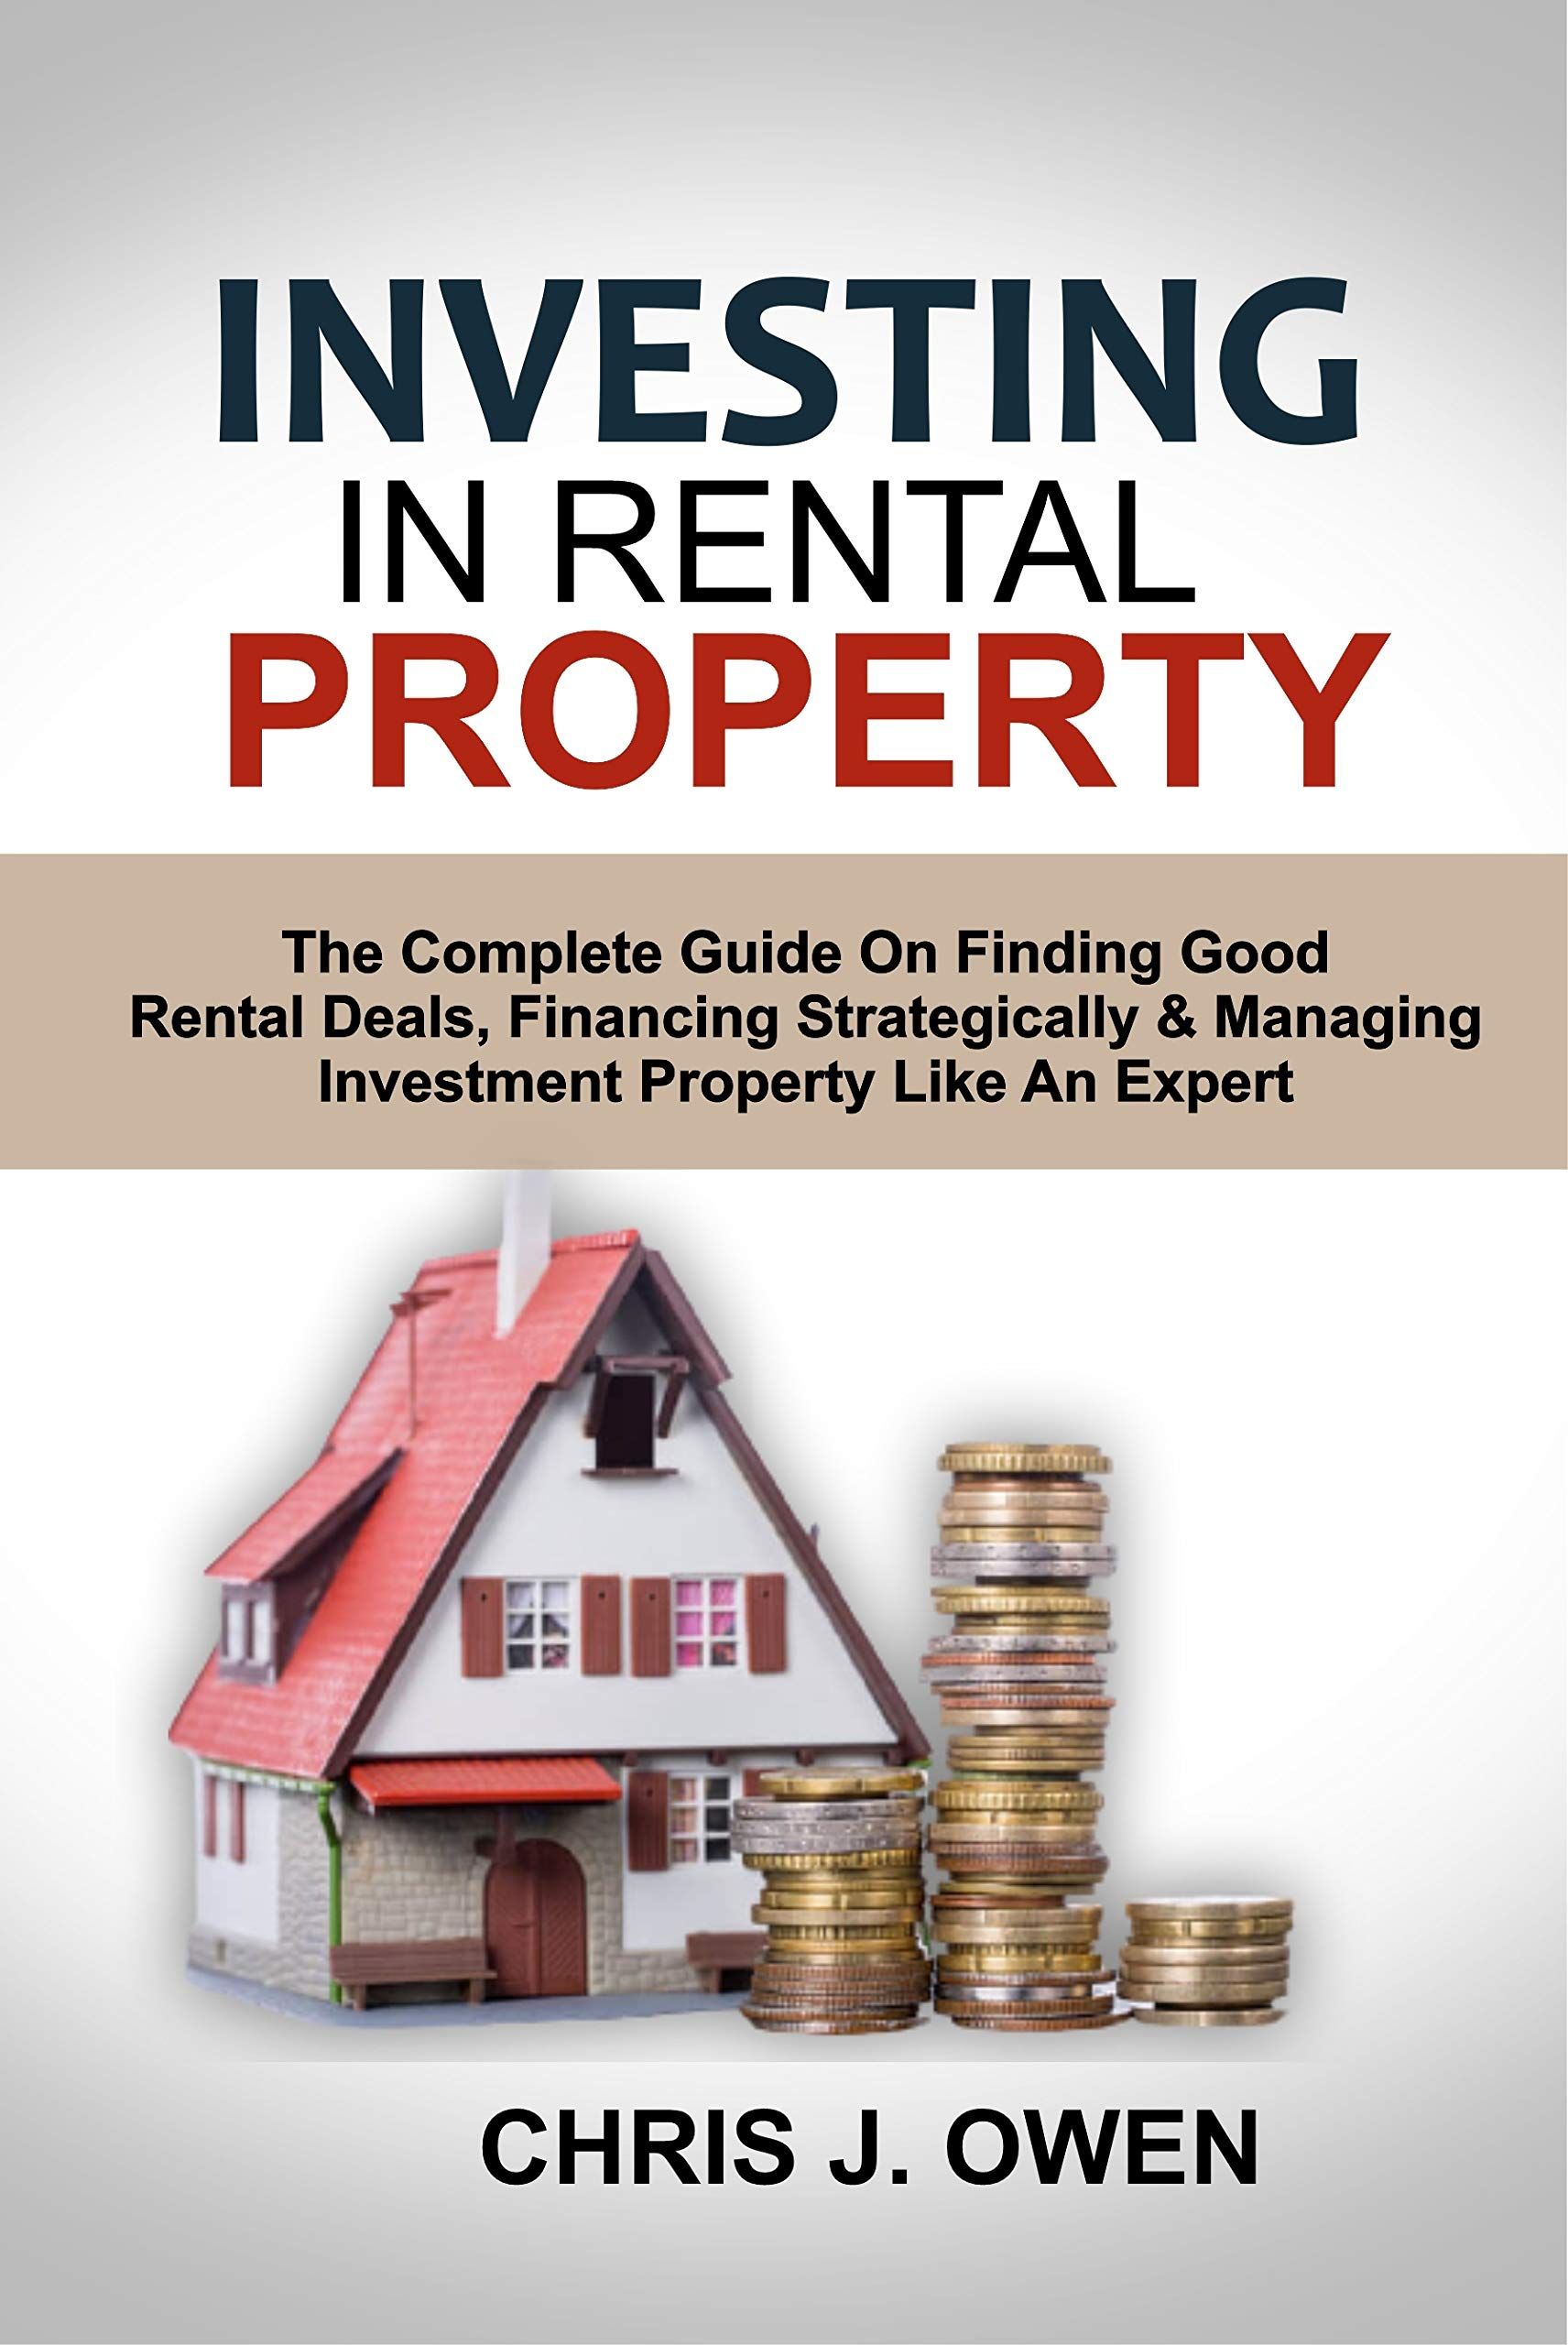 INVESTING IN RENTAL PROPERTY: The Complete Guide On Finding Good Rental Deals, Financing Strategically & Managing Investment Property Like An Expert